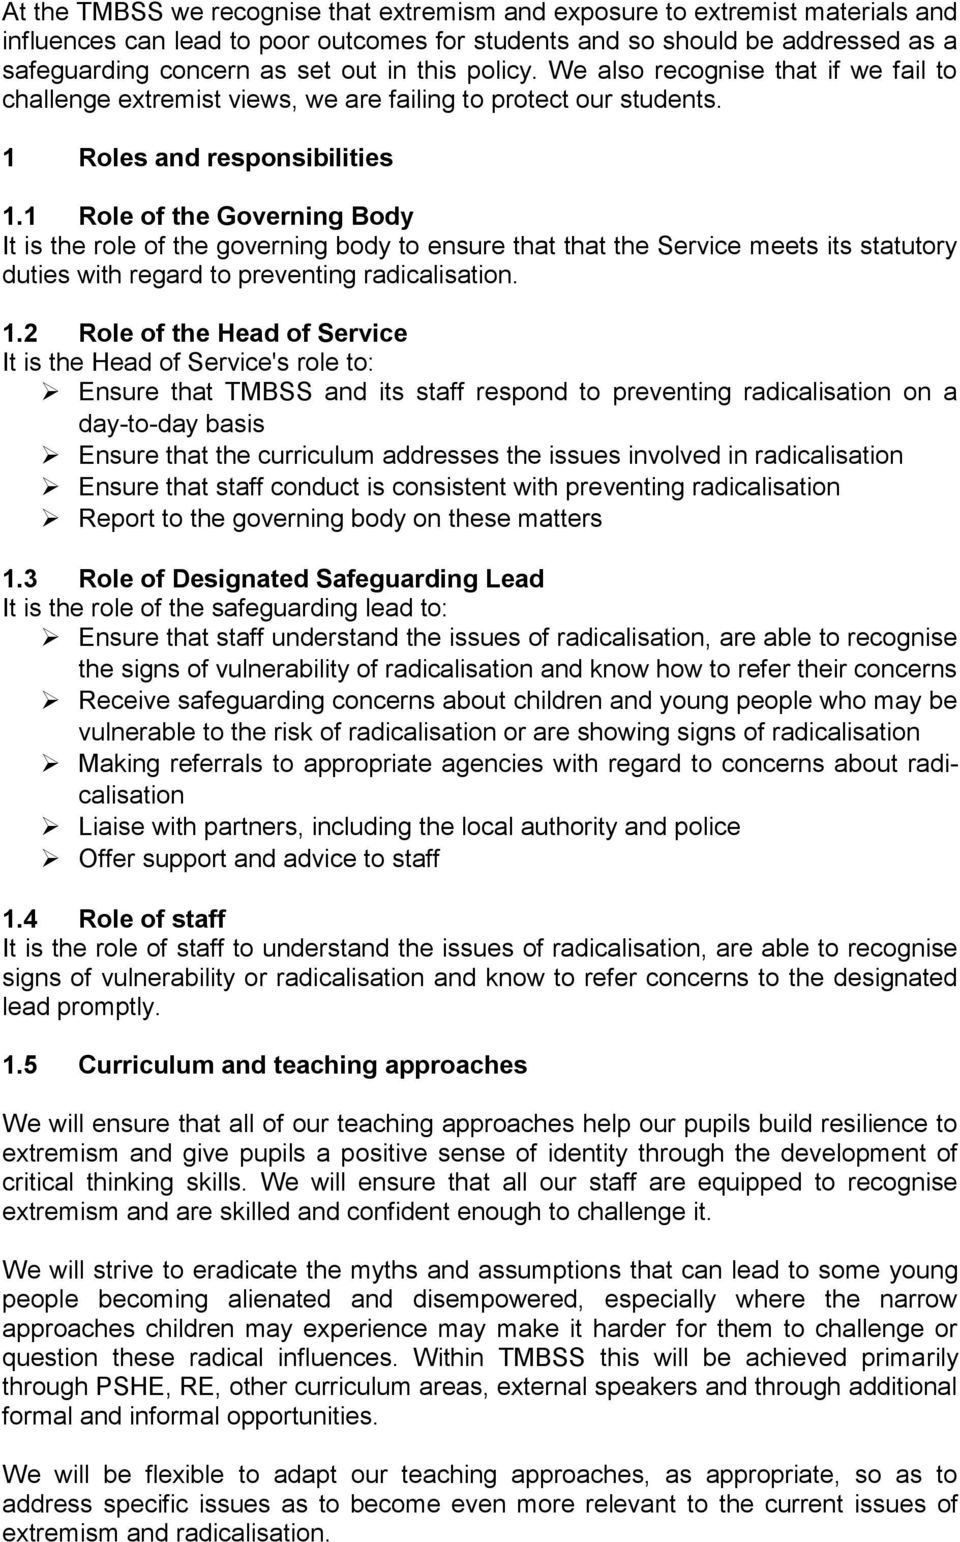 1 Role of the Governing Body It is the role of the governing body to ensure that that the Service meets its statutory duties with regard to preventing radicalisation. 1.